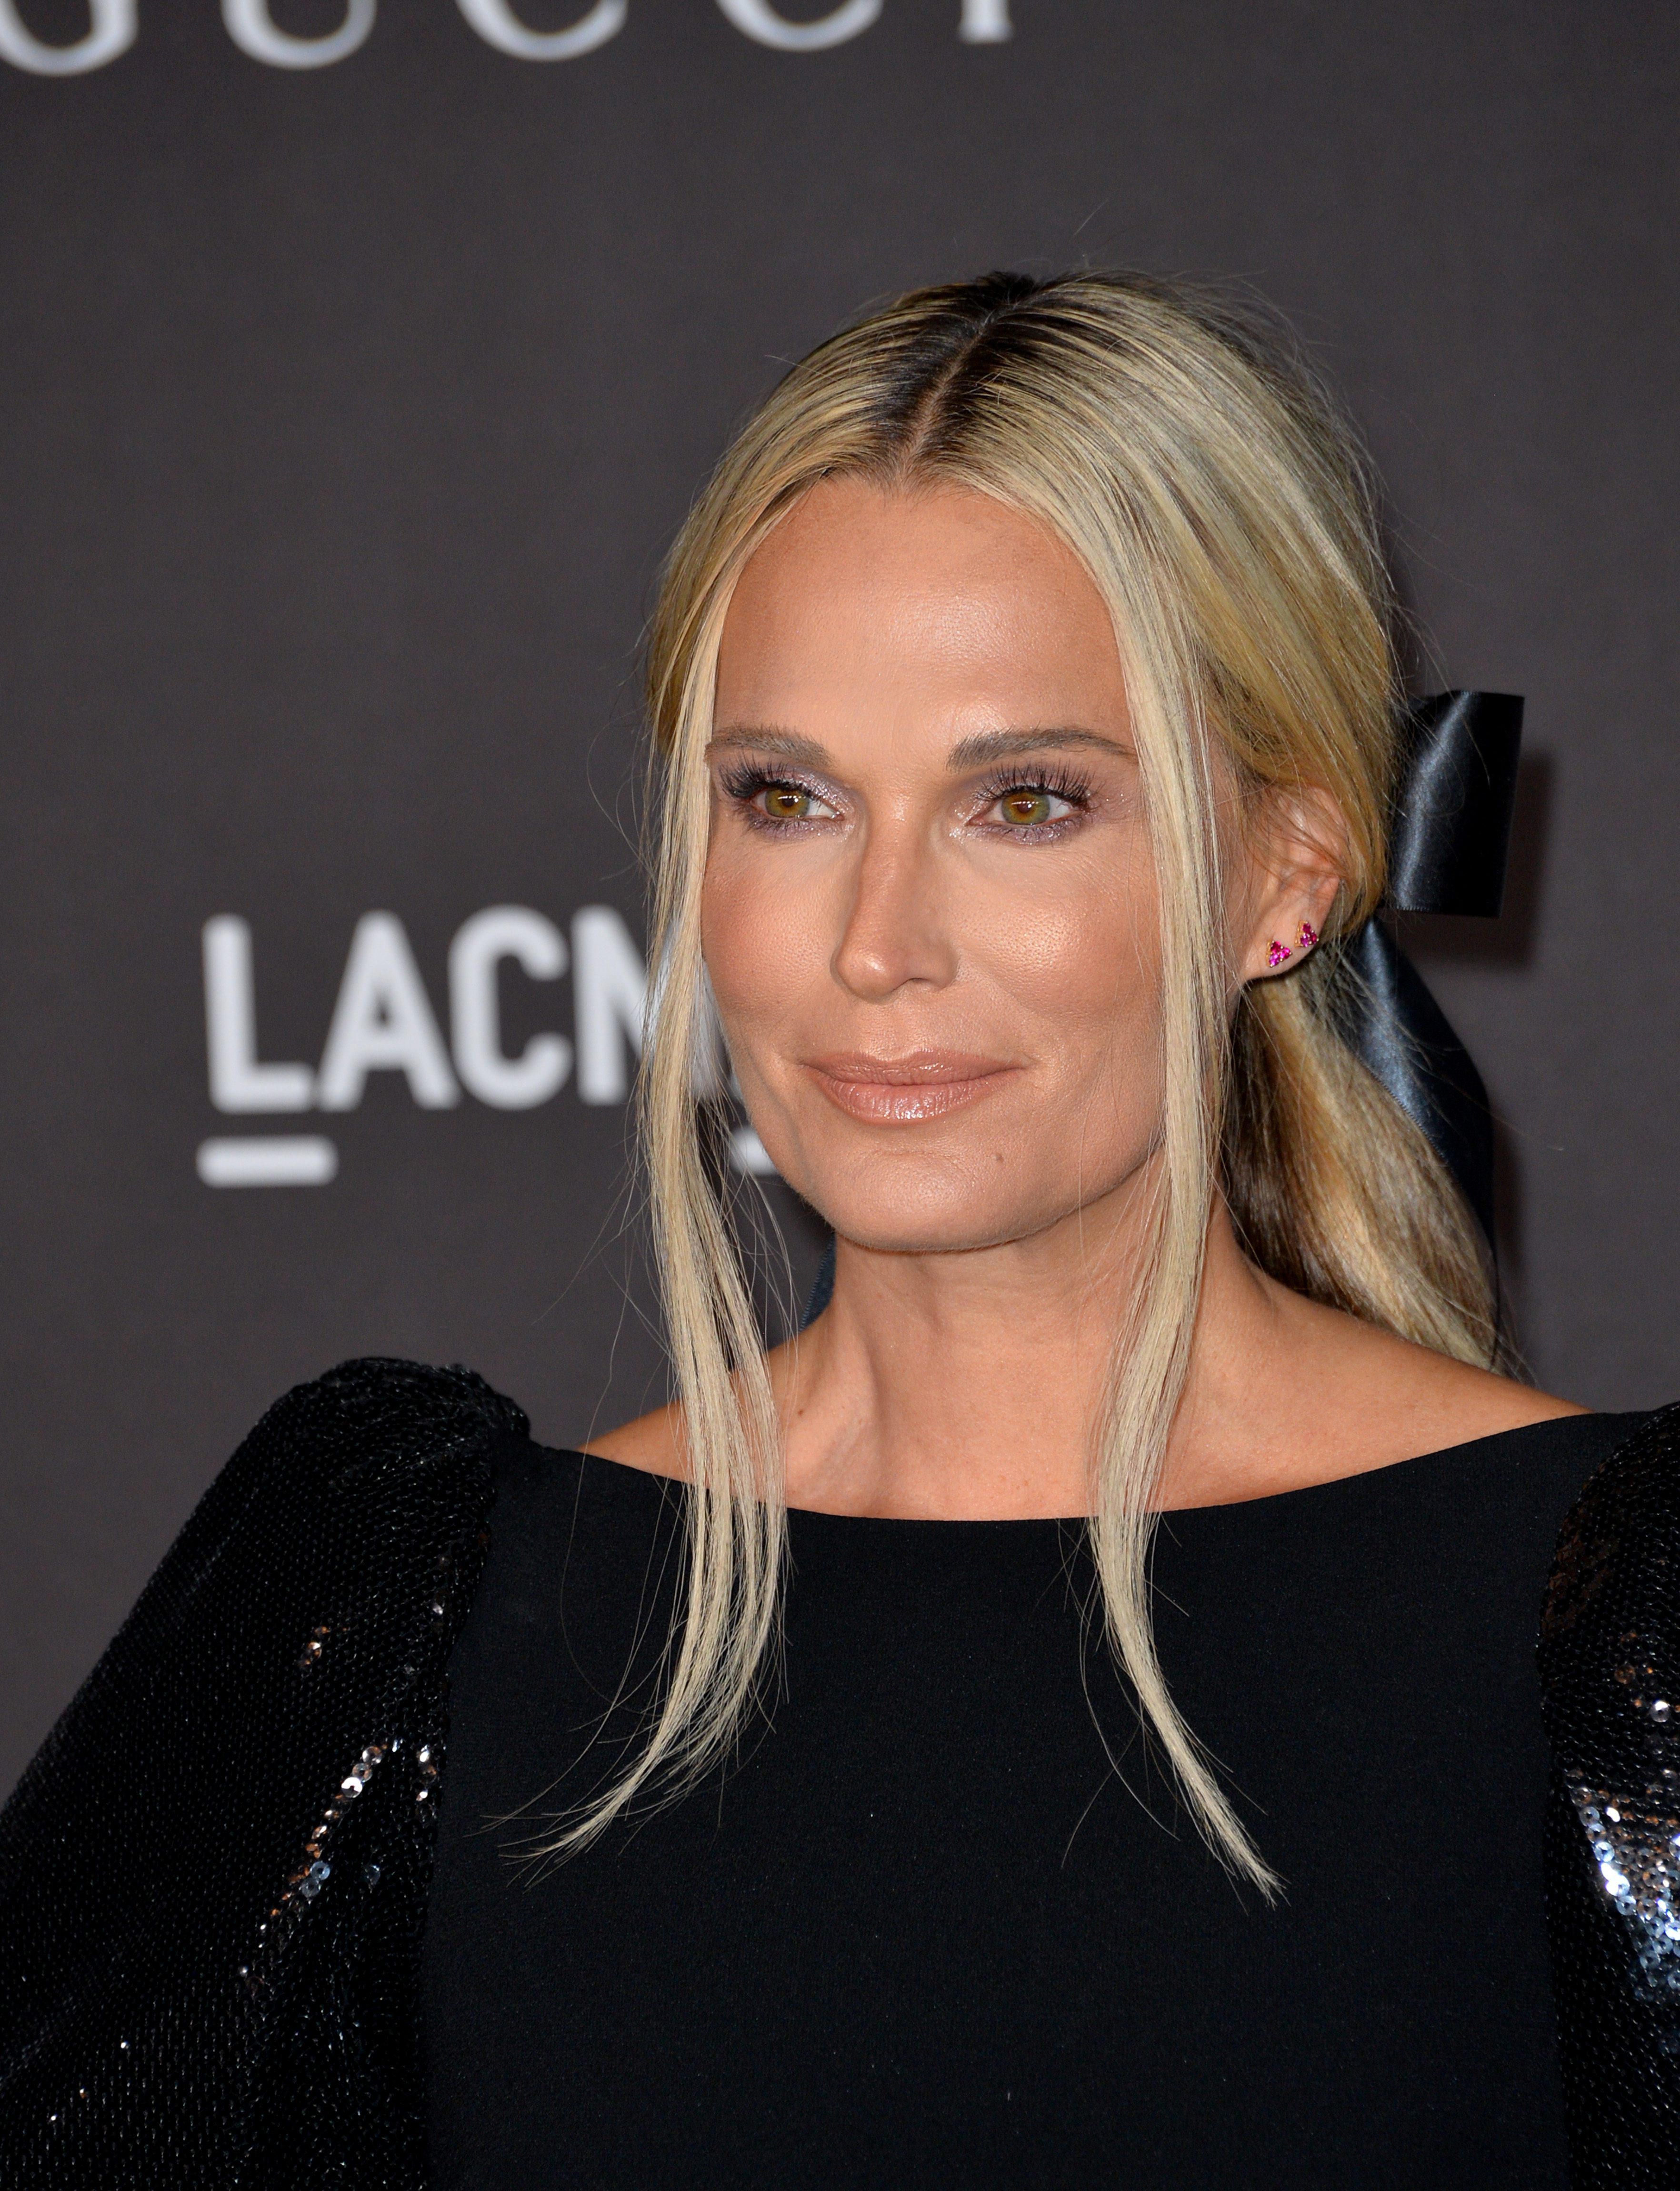 Molly Sims' Low Ponytail